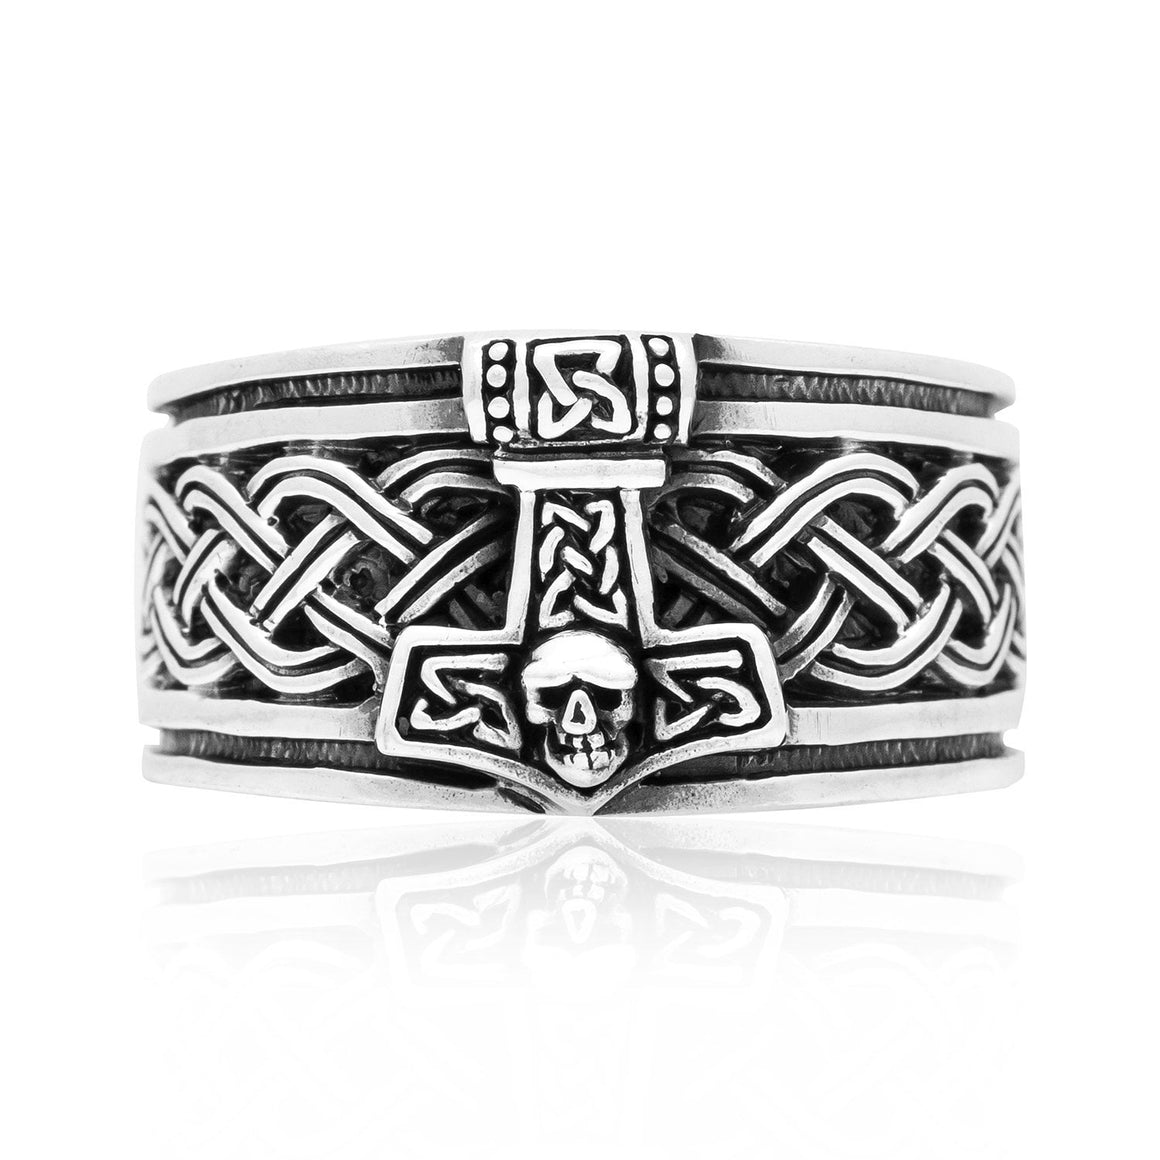 925 Sterling Silver Thor Hammer Band Ring with Celtic Motifs - SilverMania925